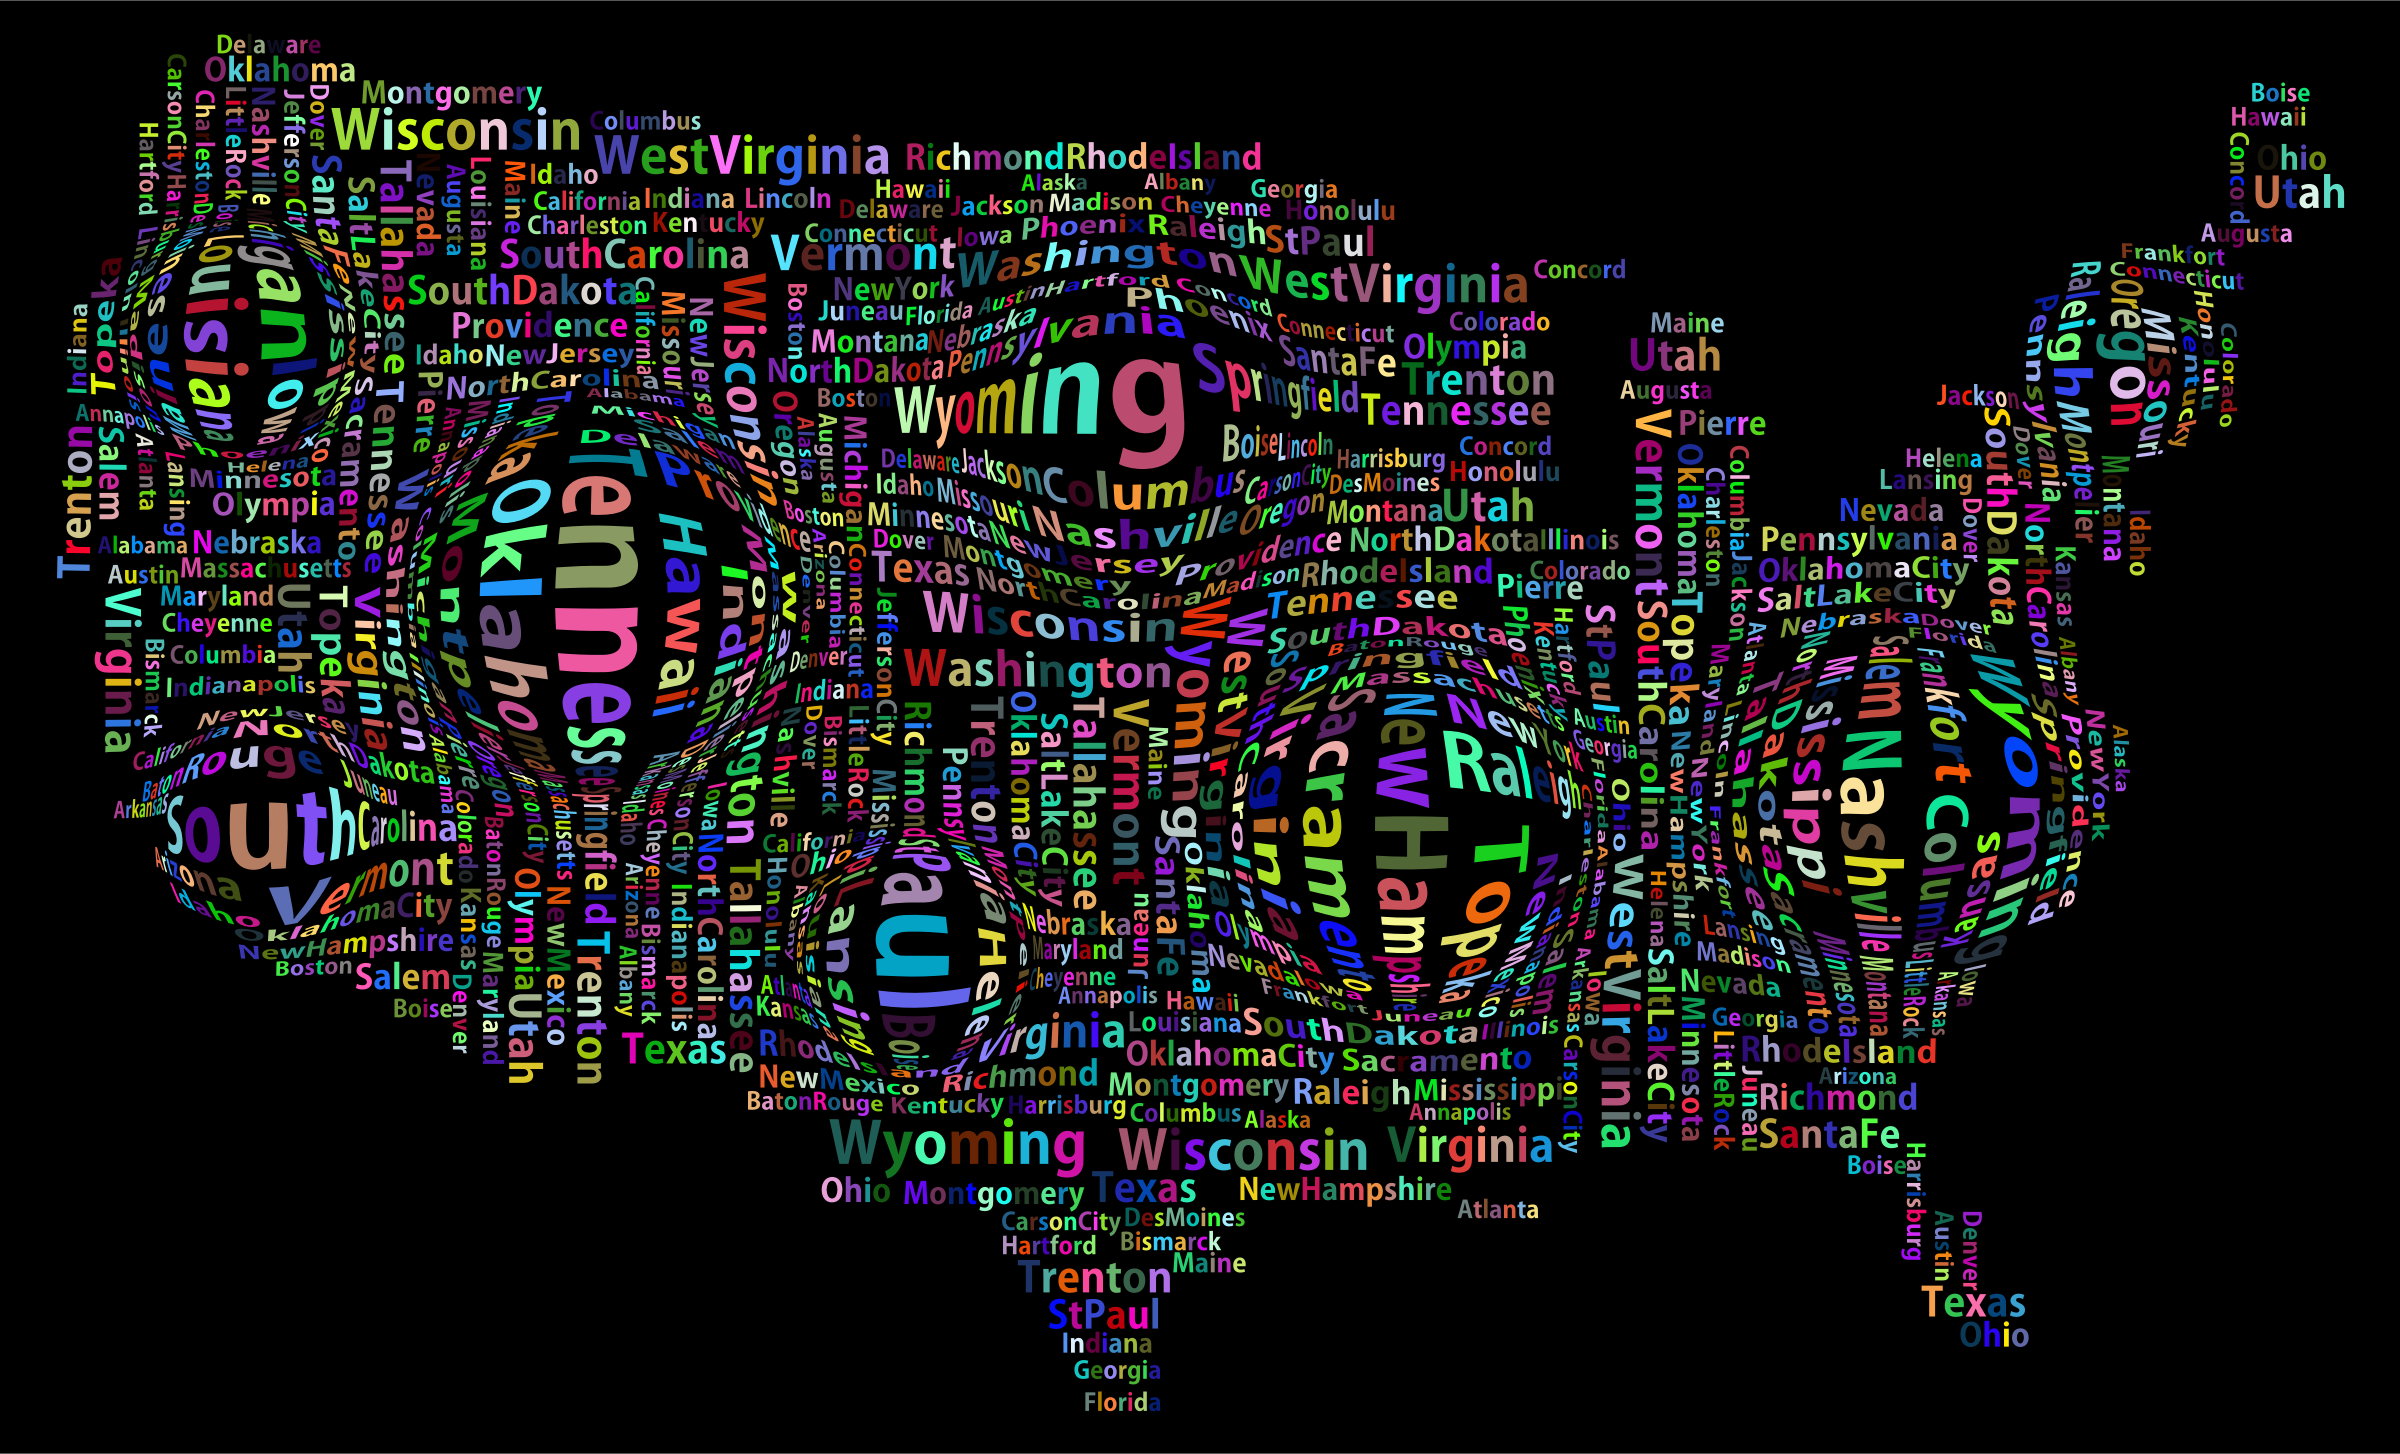 Prismatic Distorted America States And Capitals Word Cloud by GDJ